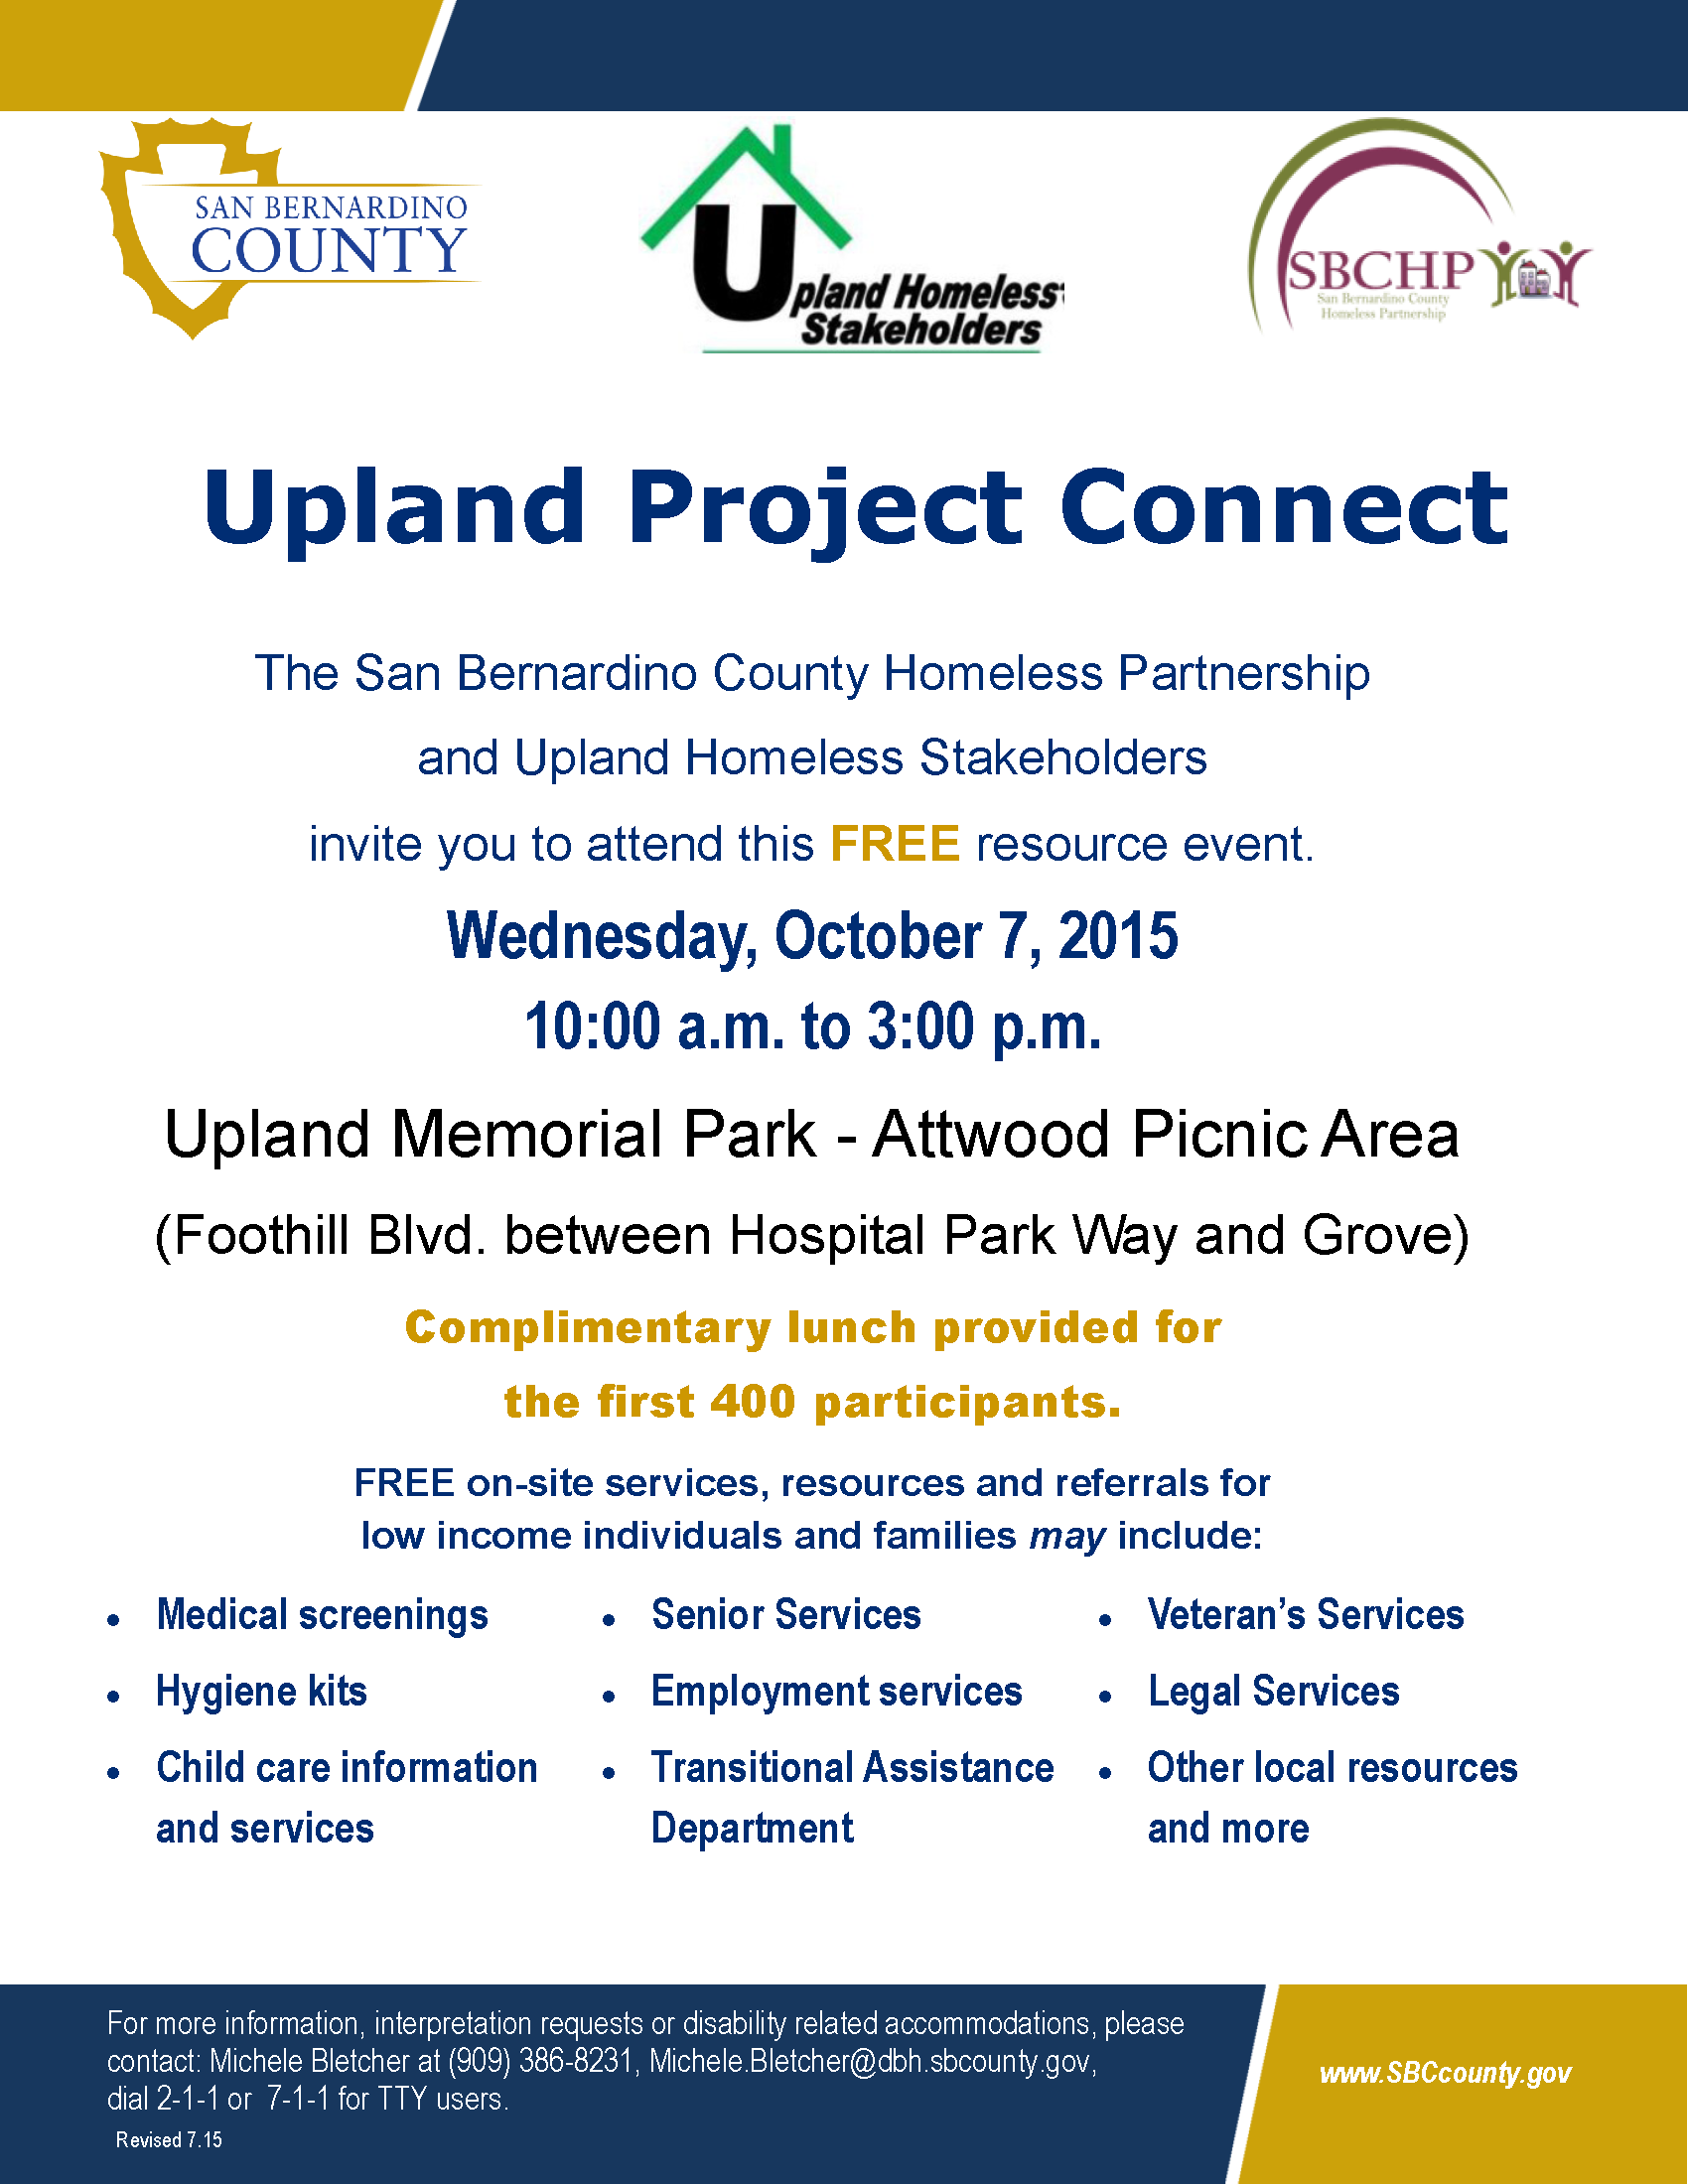 Upland 2015 PROJECT CONNECT Flyer PIO rev  7 15 15 (4)